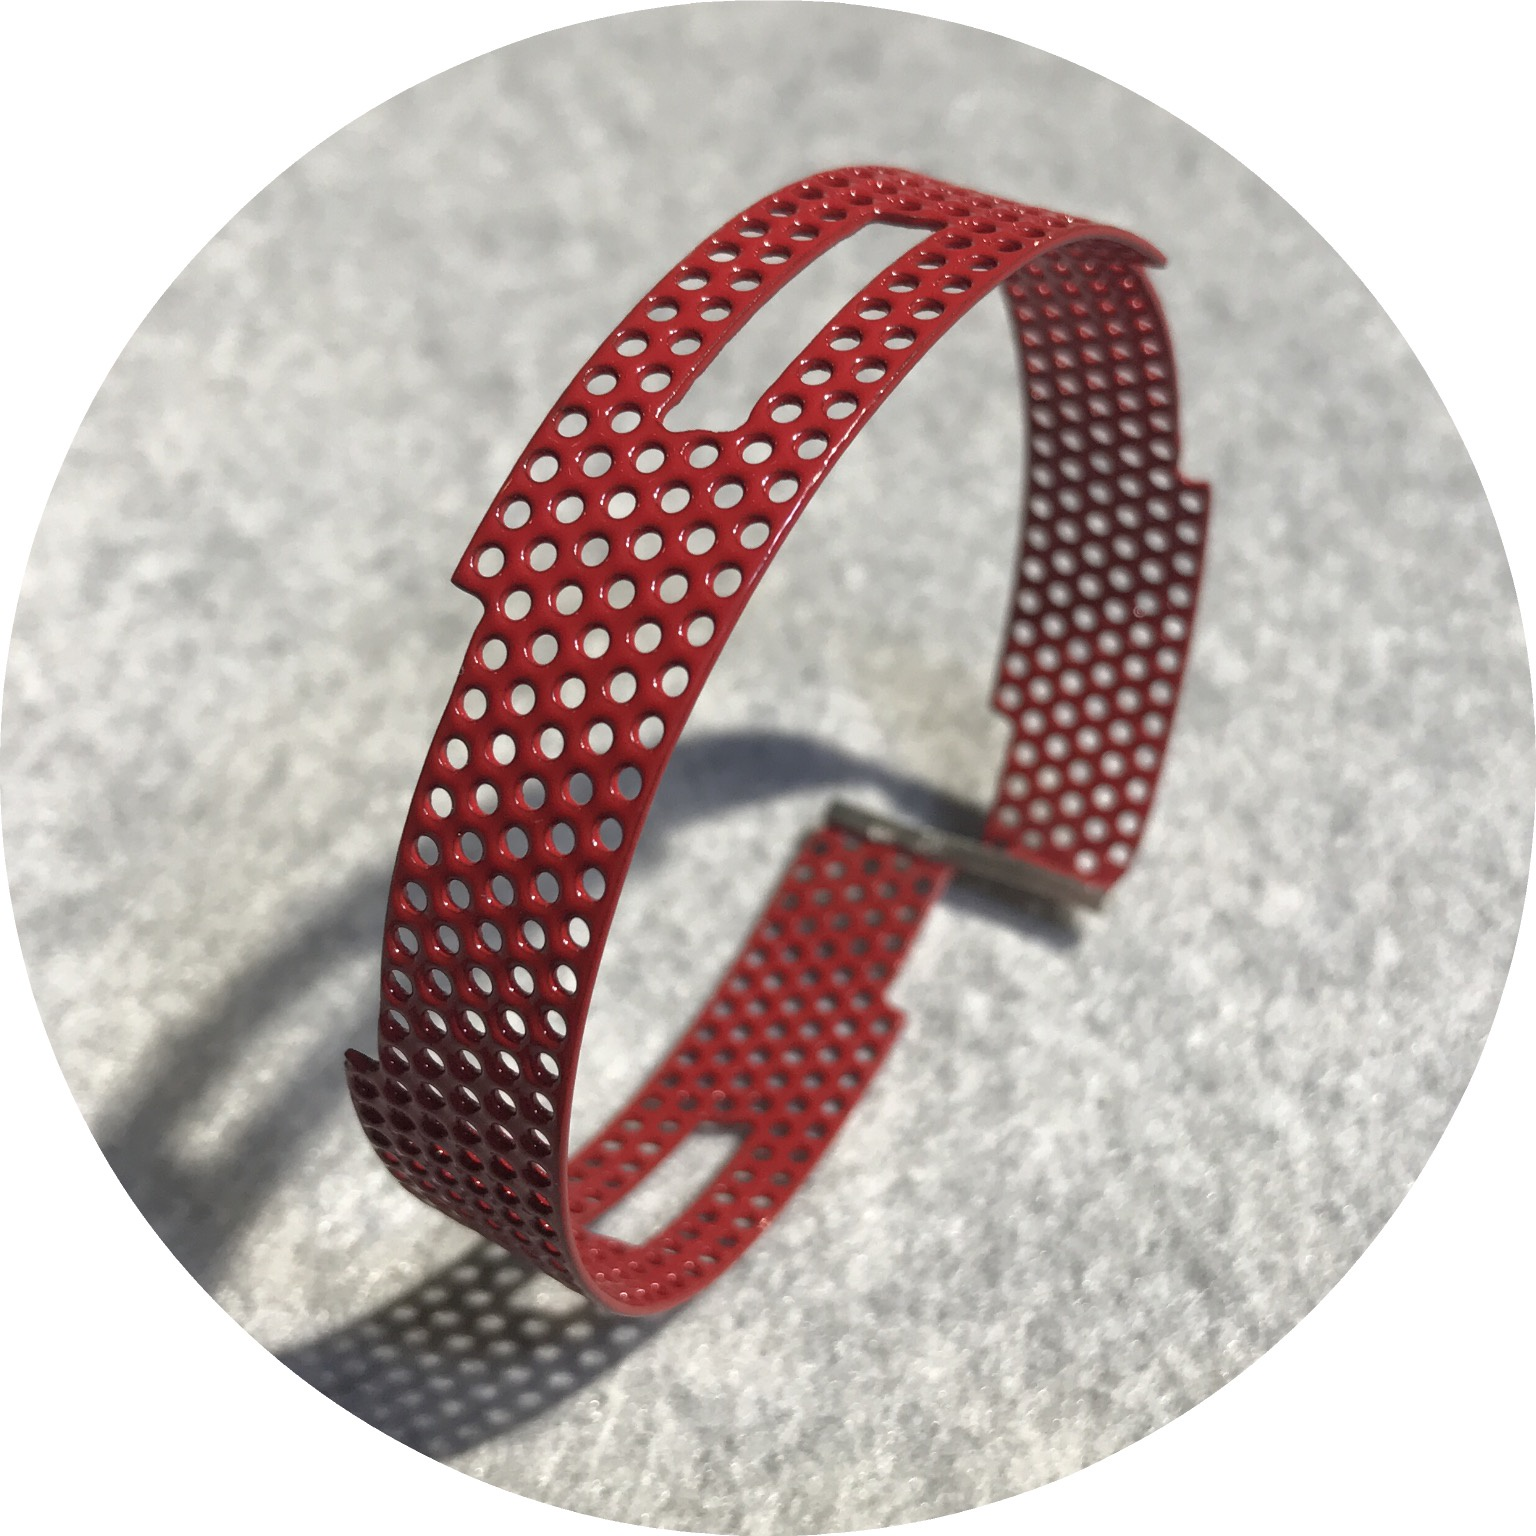 Jin Ah Jo- Perforation bangle, red powdercoated mild steel and sterling silver.